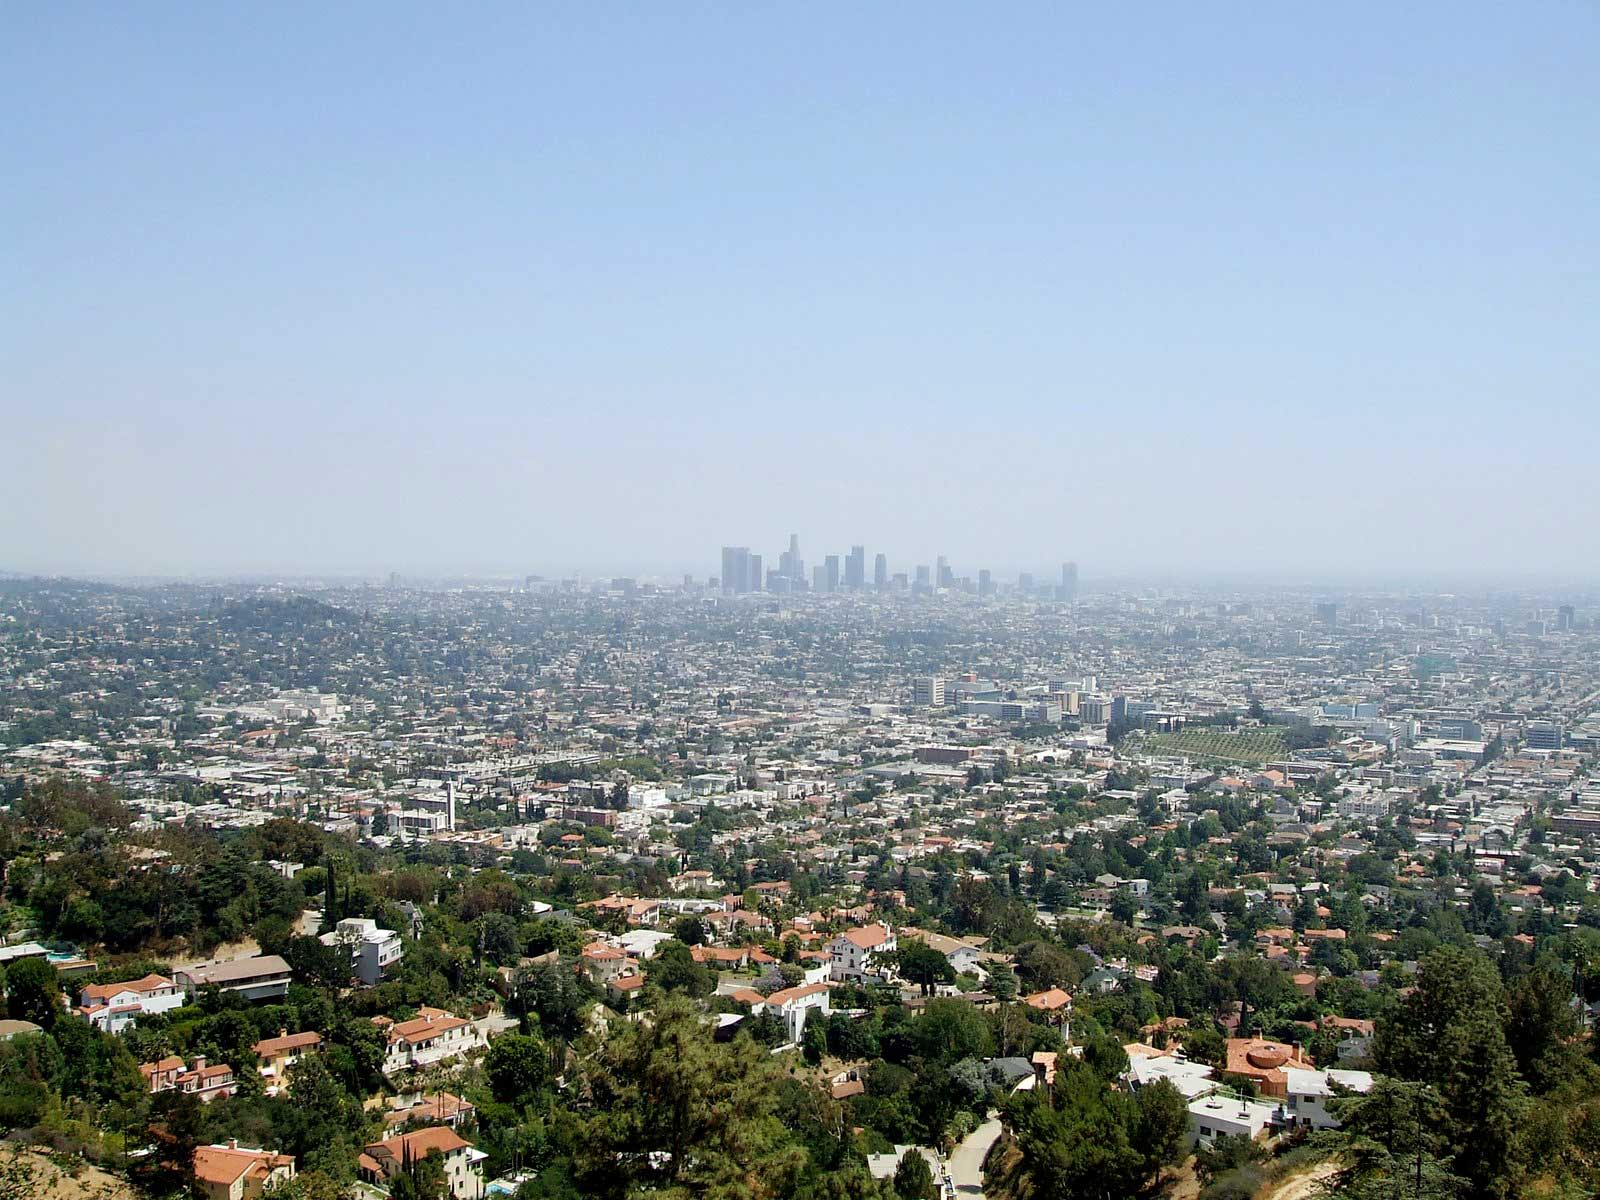 Los Angeles, Portland, and the Shape of Life